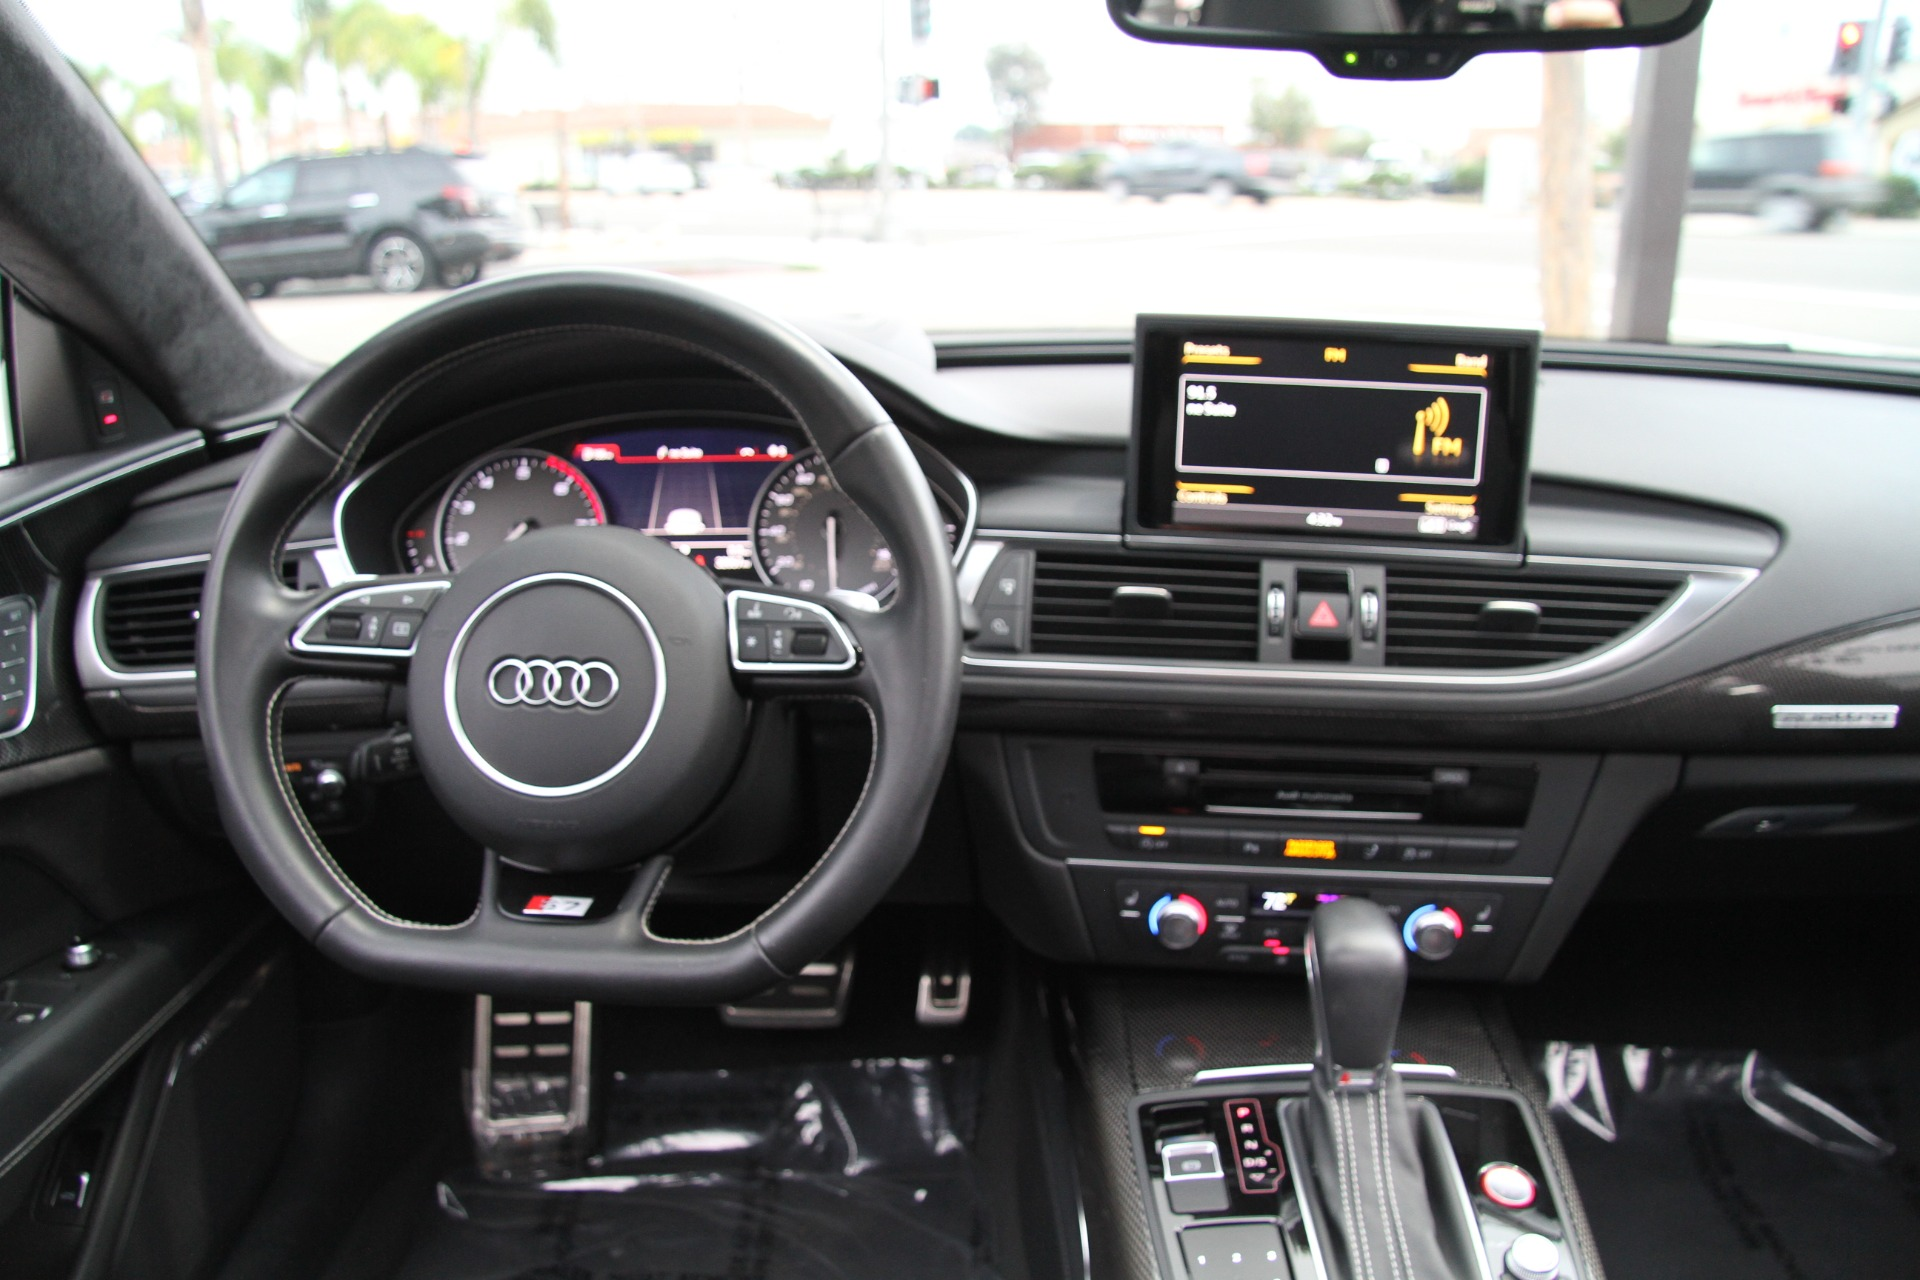 Audi Dealership Near Me >> 2016 Audi S7 4.0T quattro ** Prestige ** Stock # 6101 for ...